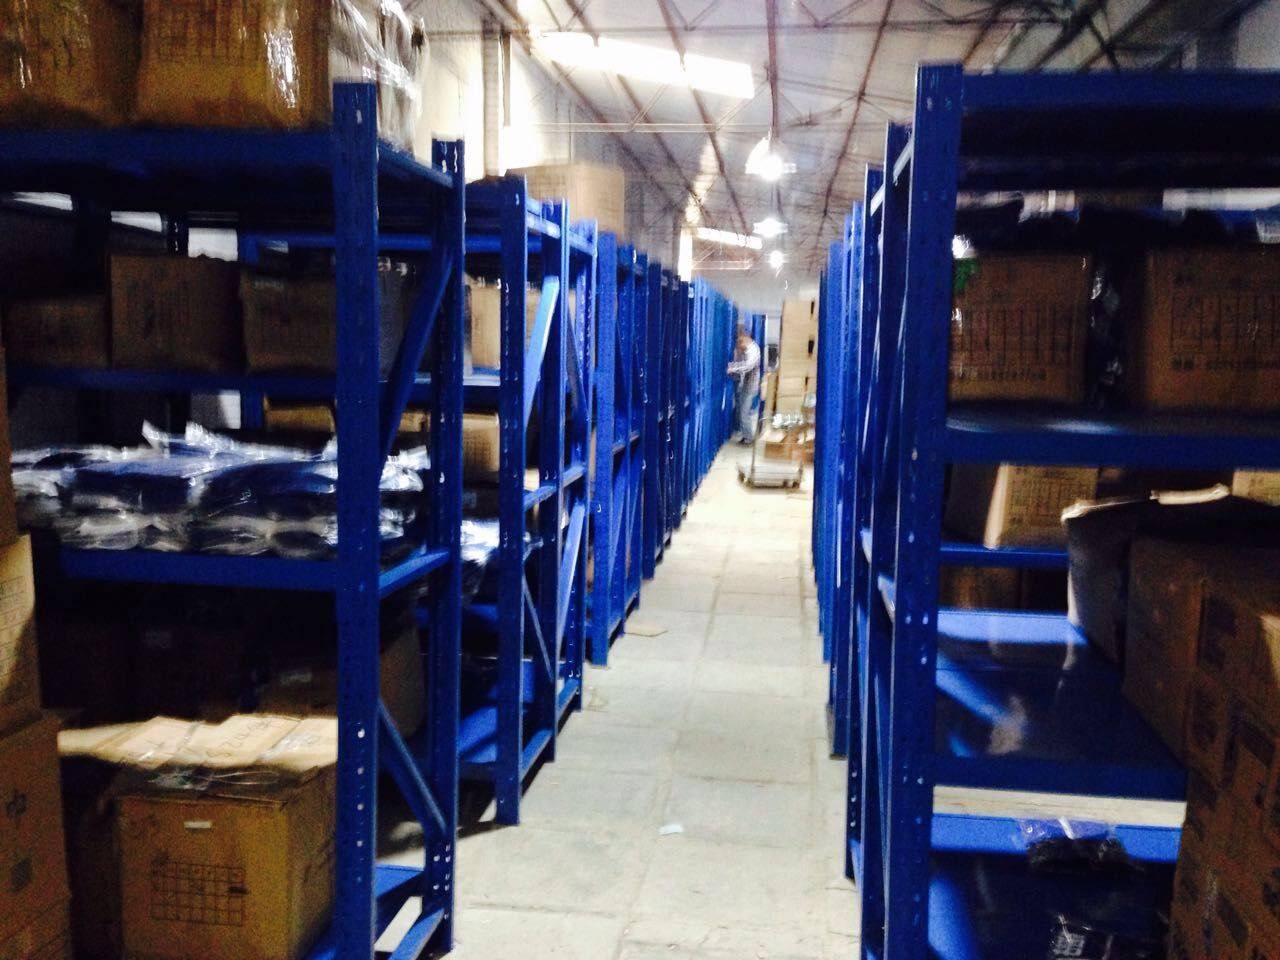 Kệ hàng    Beijing warehouse shelves factory specializing in the production warehouse shelves stora